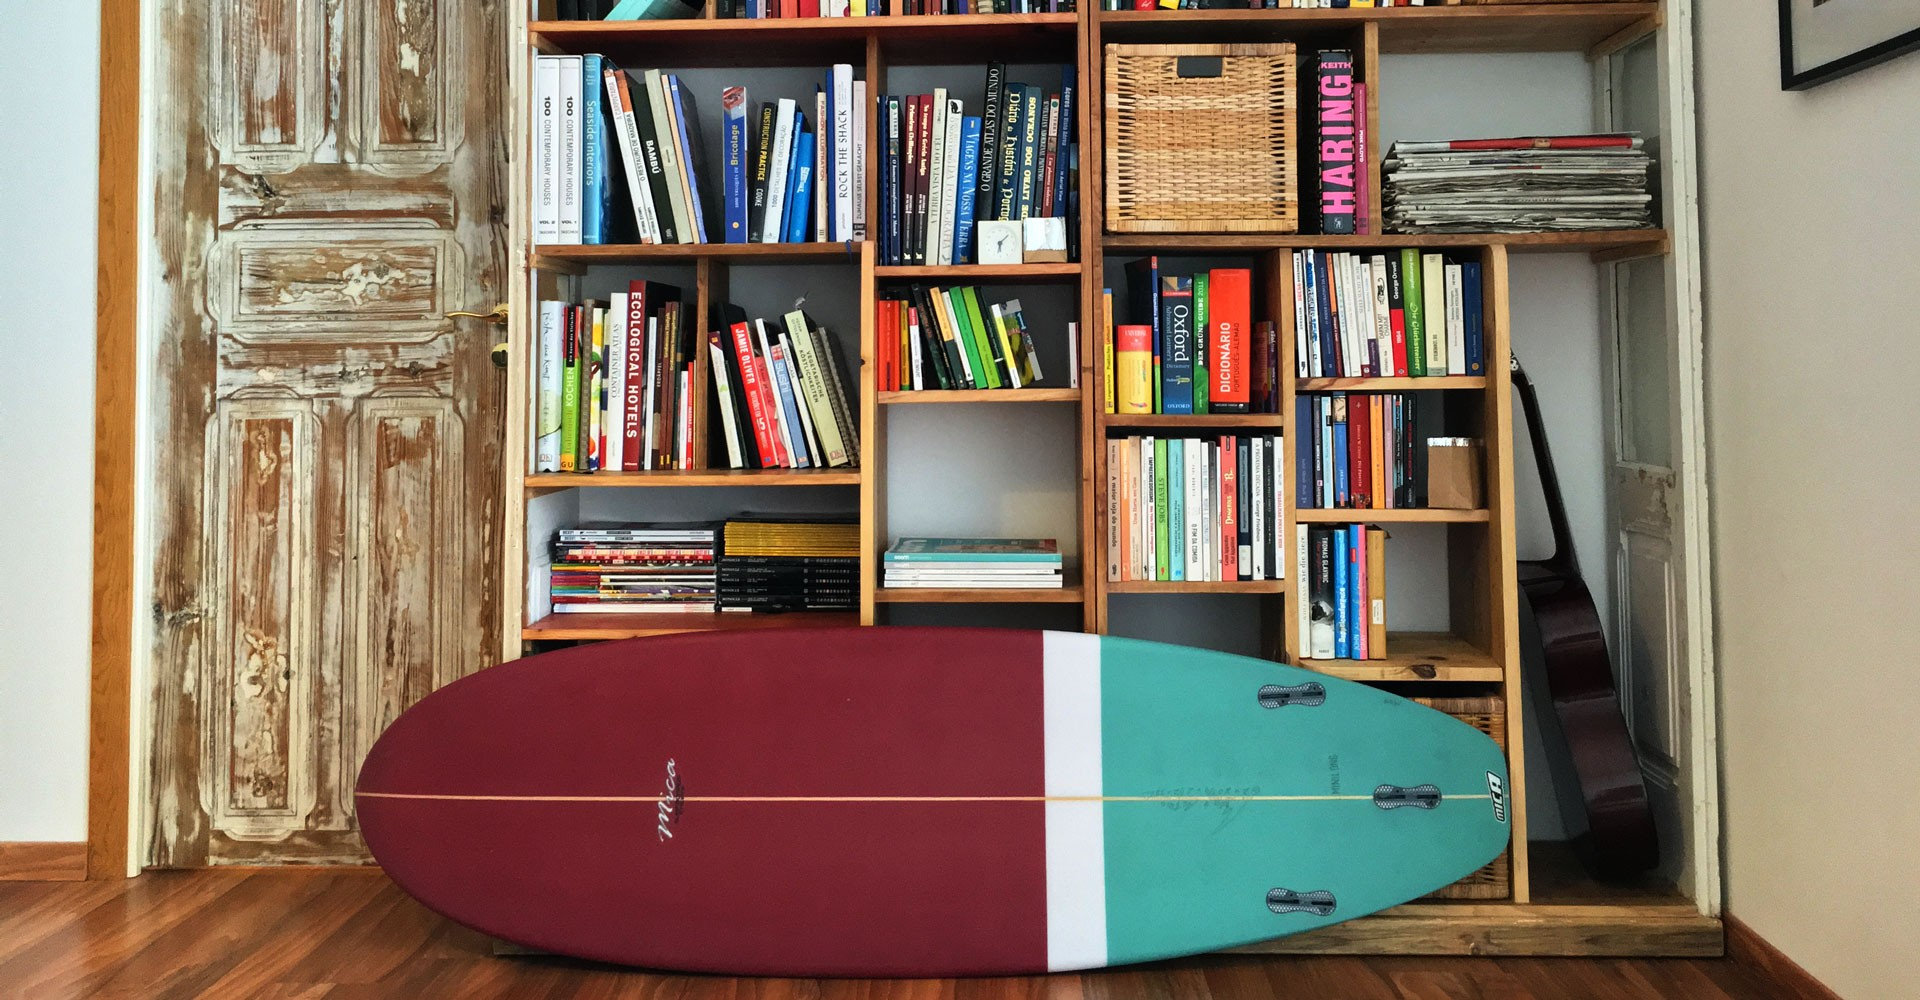 Micasurfboards builds Longboards, Shortboards, Retros, Funboards, Malibus and more